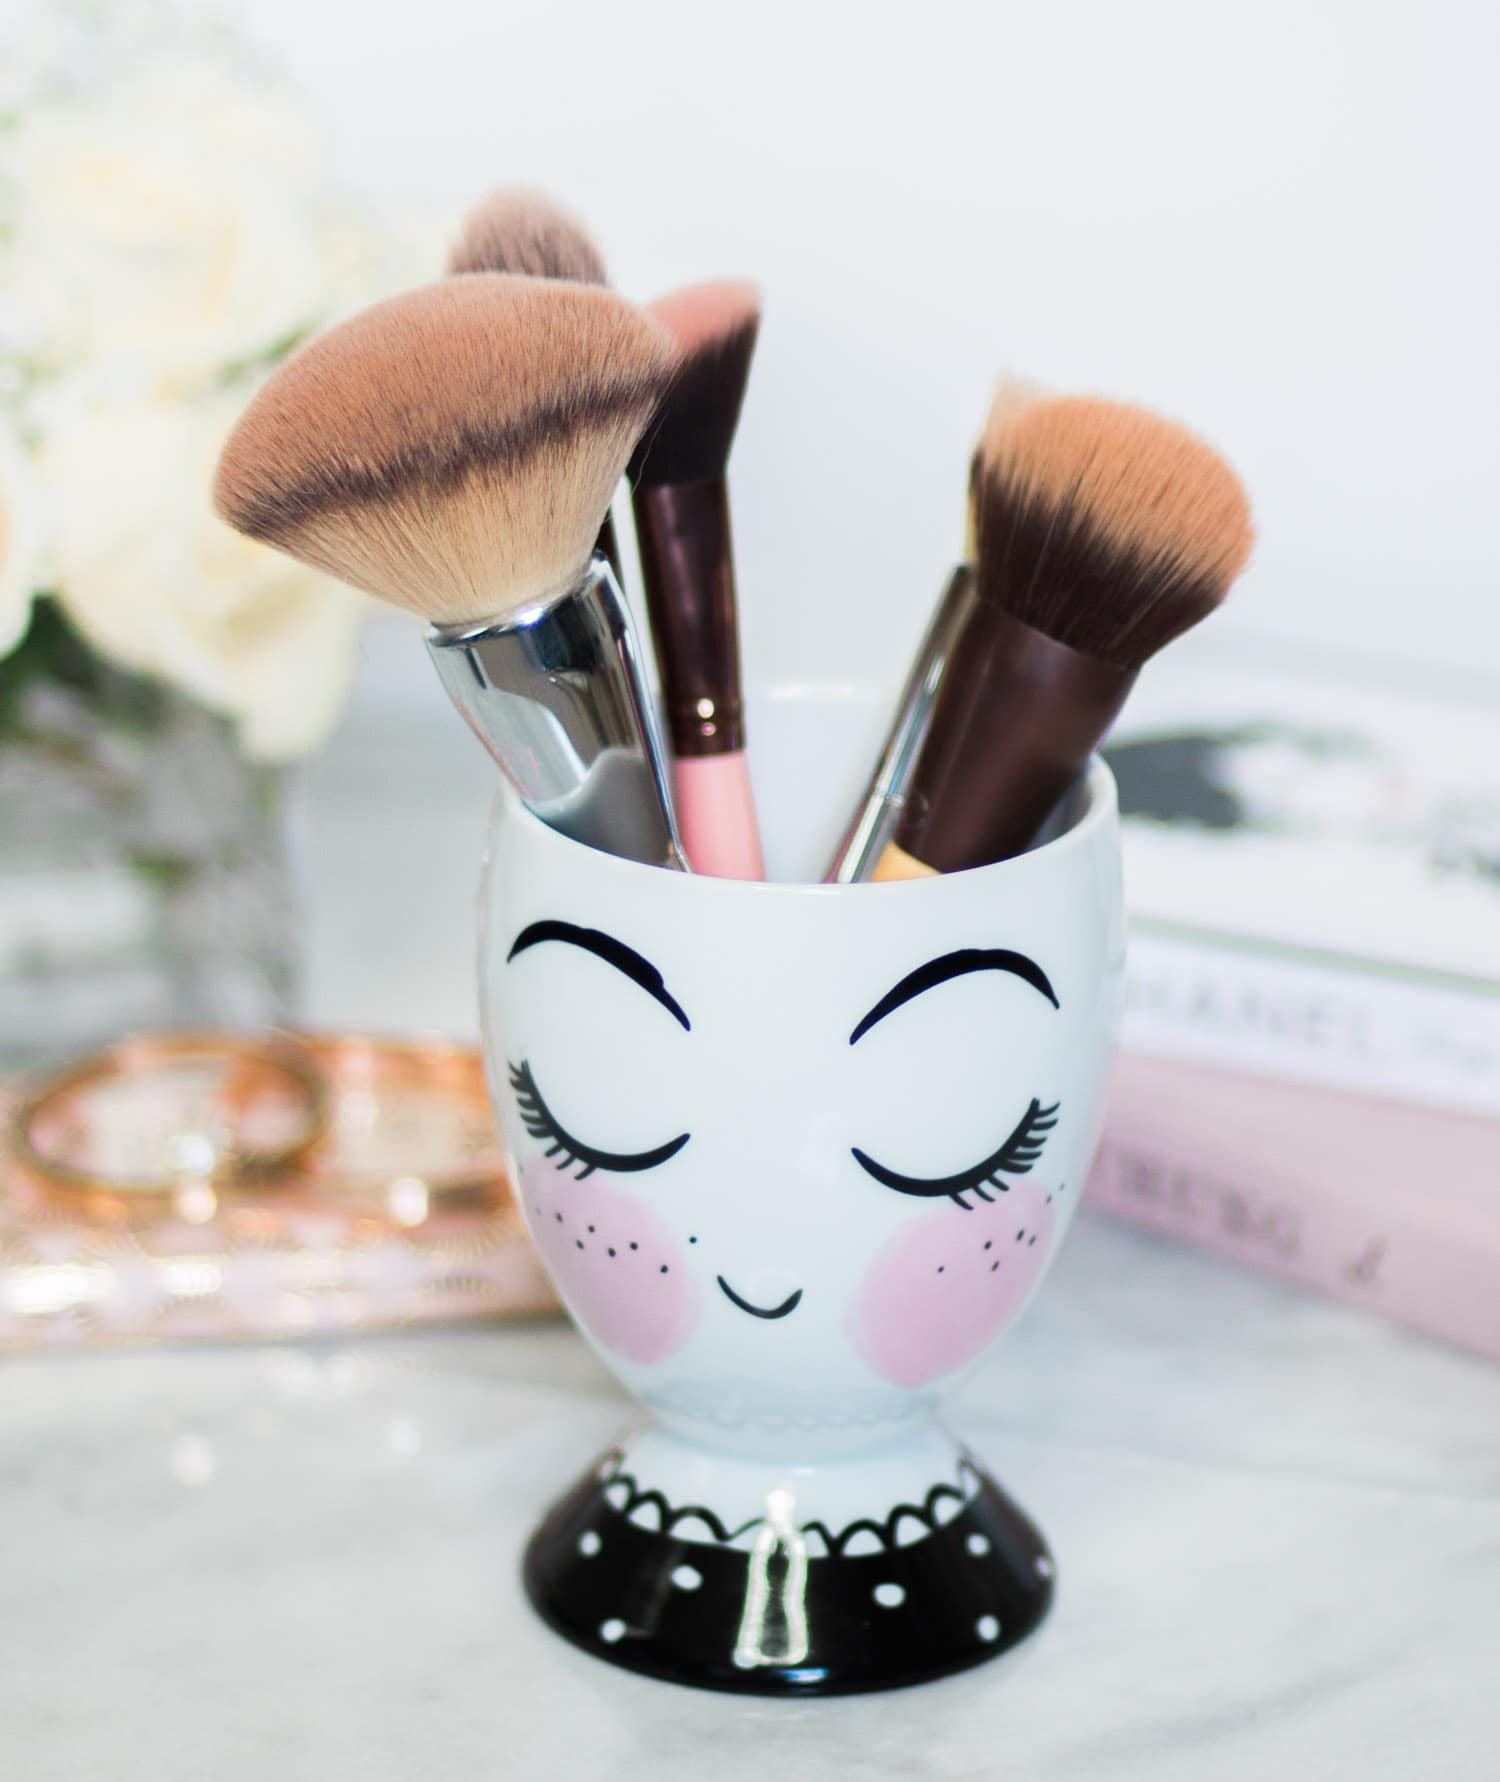 target-blushing-girl-with-eyelashes-makeup-brush-holder-4203